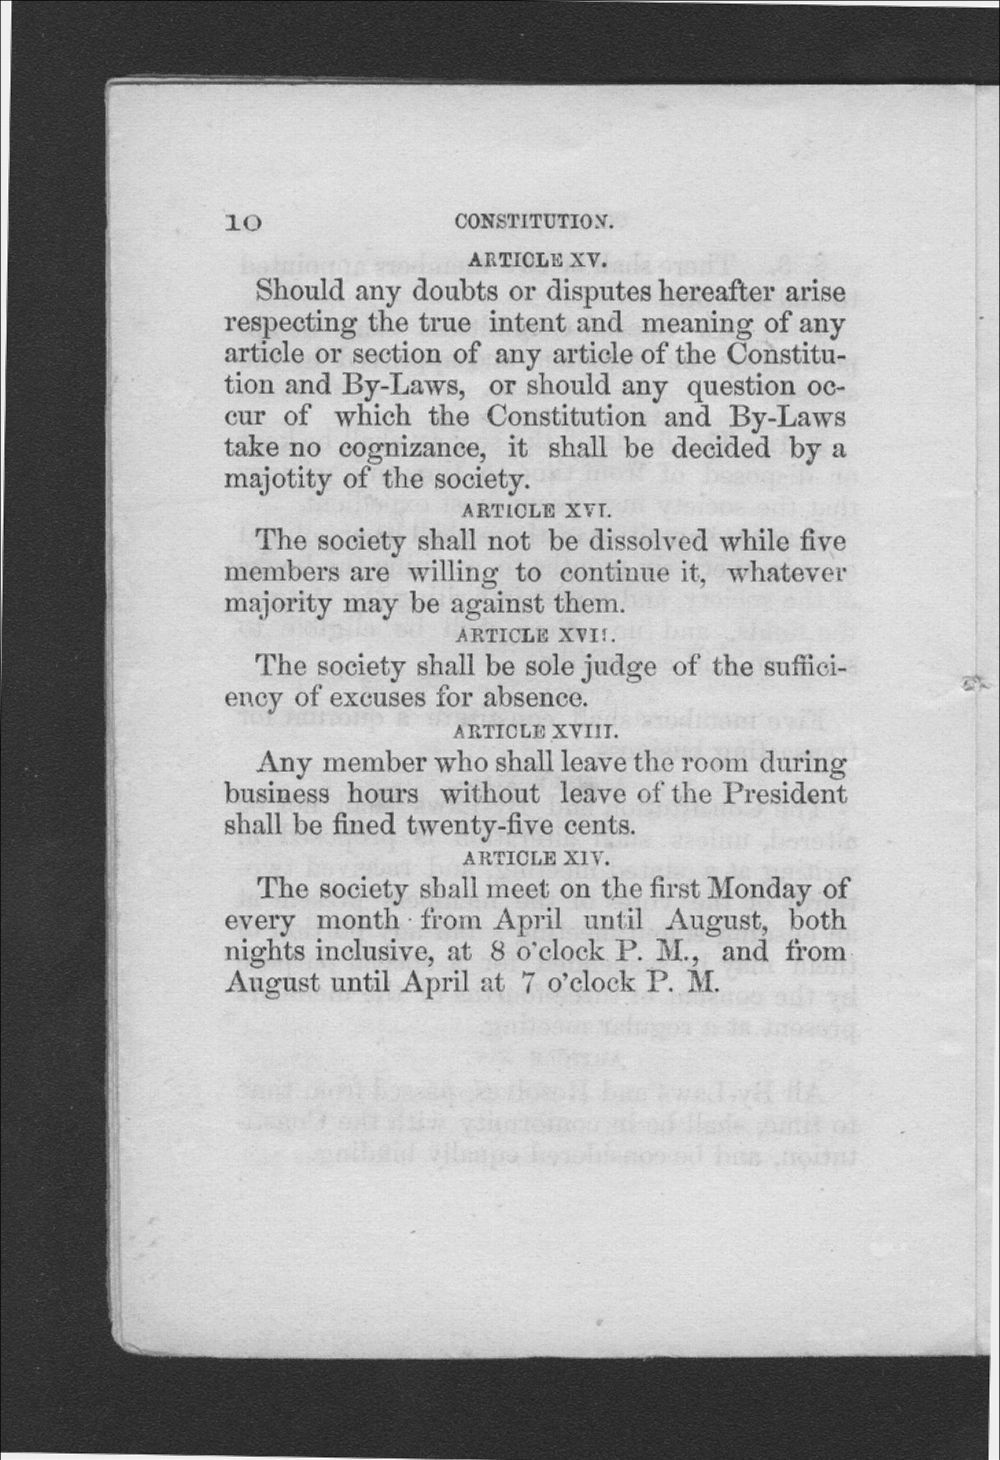 Constitution and By-Laws of the Trade Association of Journeymen Cordwainers, of the City of Leavenworth, Kansas - 10